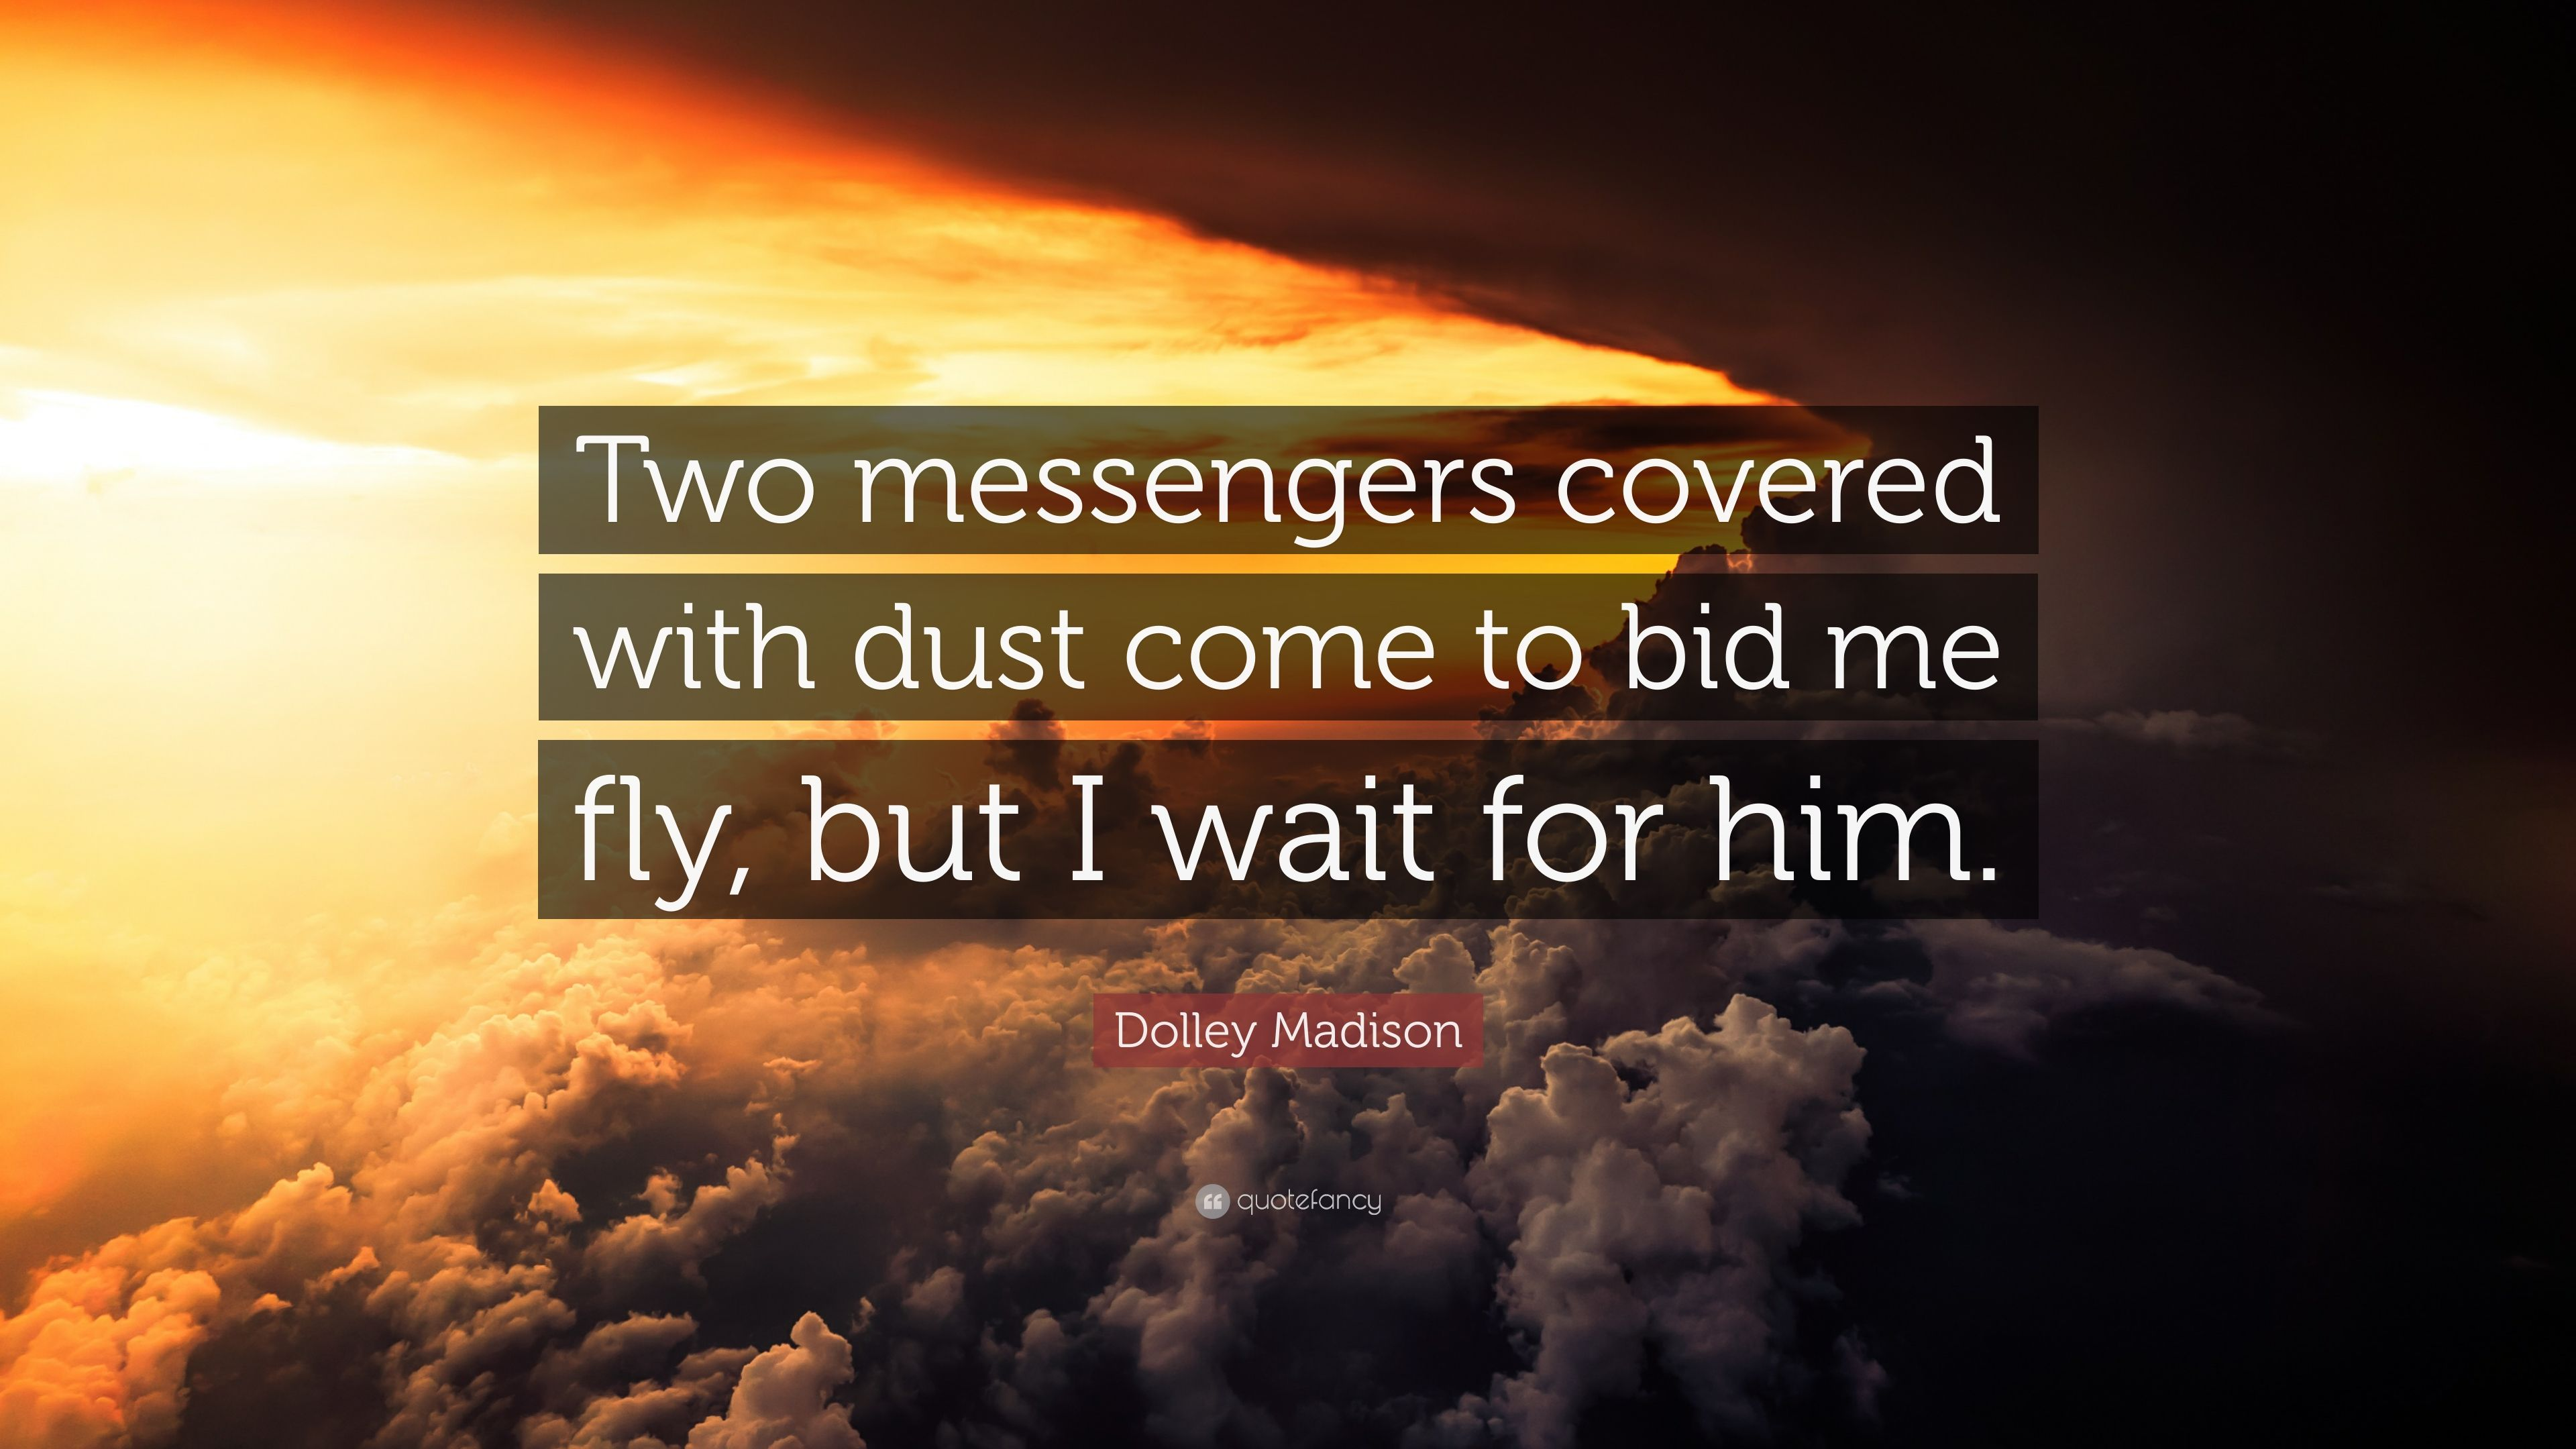 Dolley Madison Quotes | Dolley Madison Quote Two Messengers Covered With Dust Come